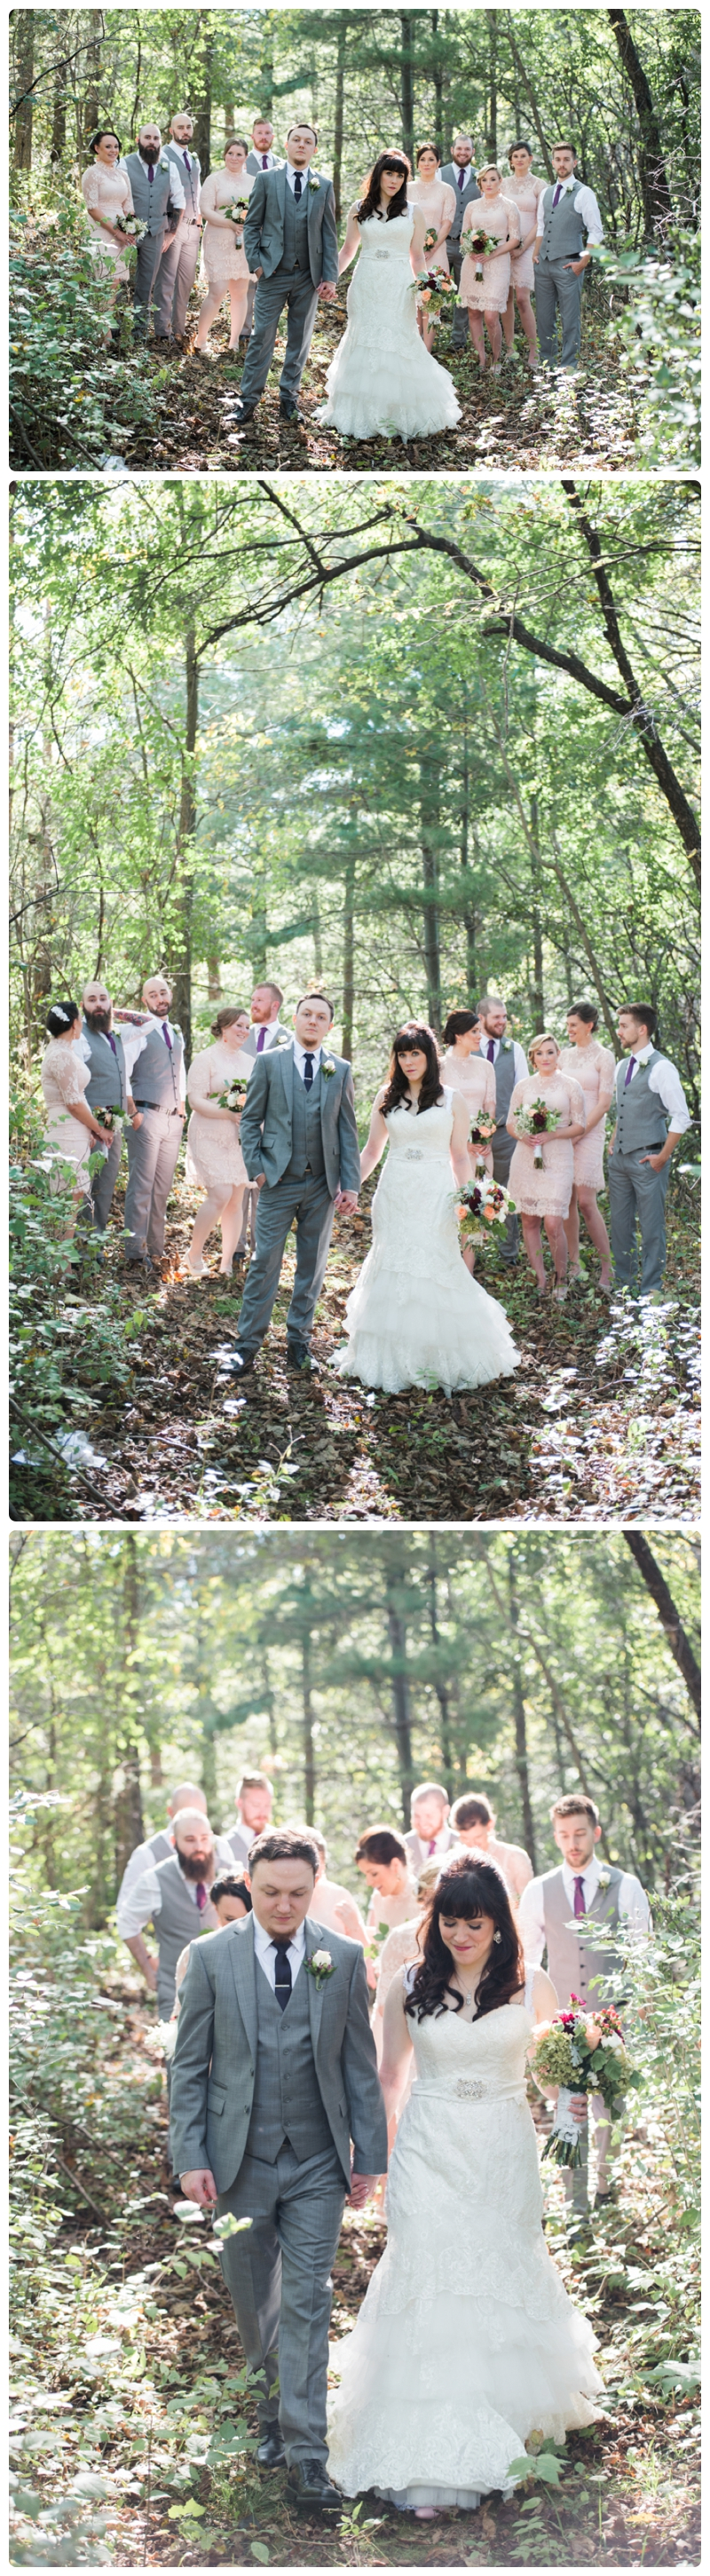 Backyard forest wedding in the Chicago suburbs by Rachael Foster Photography_0016.jpg